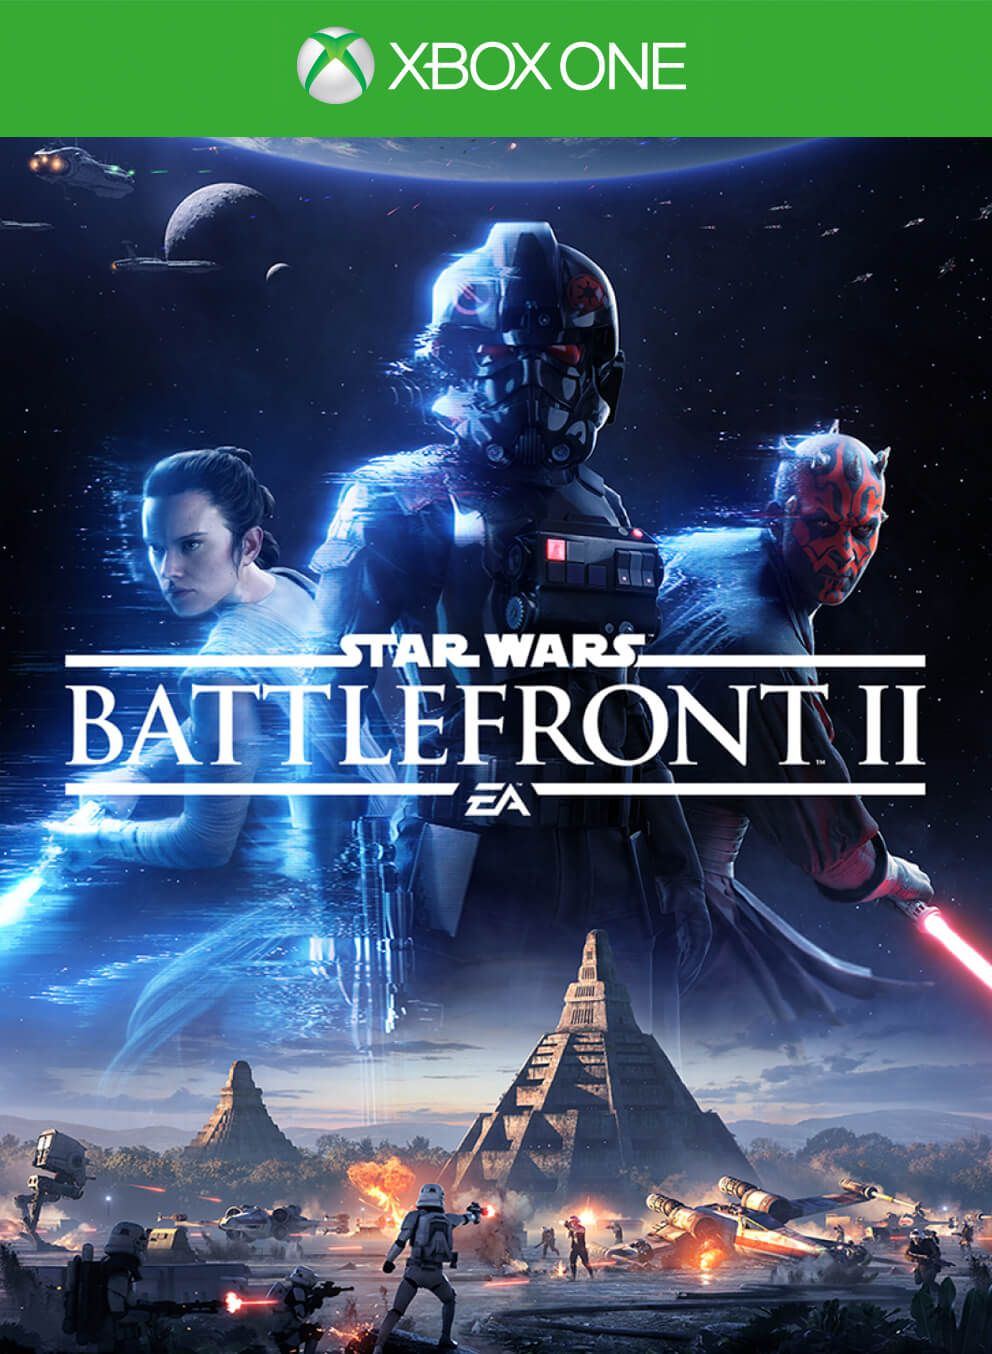 Image Result For Star Wars Battlefront 2 Xbox One Star Wars Battlefront Star Wars Video Games Battlefront